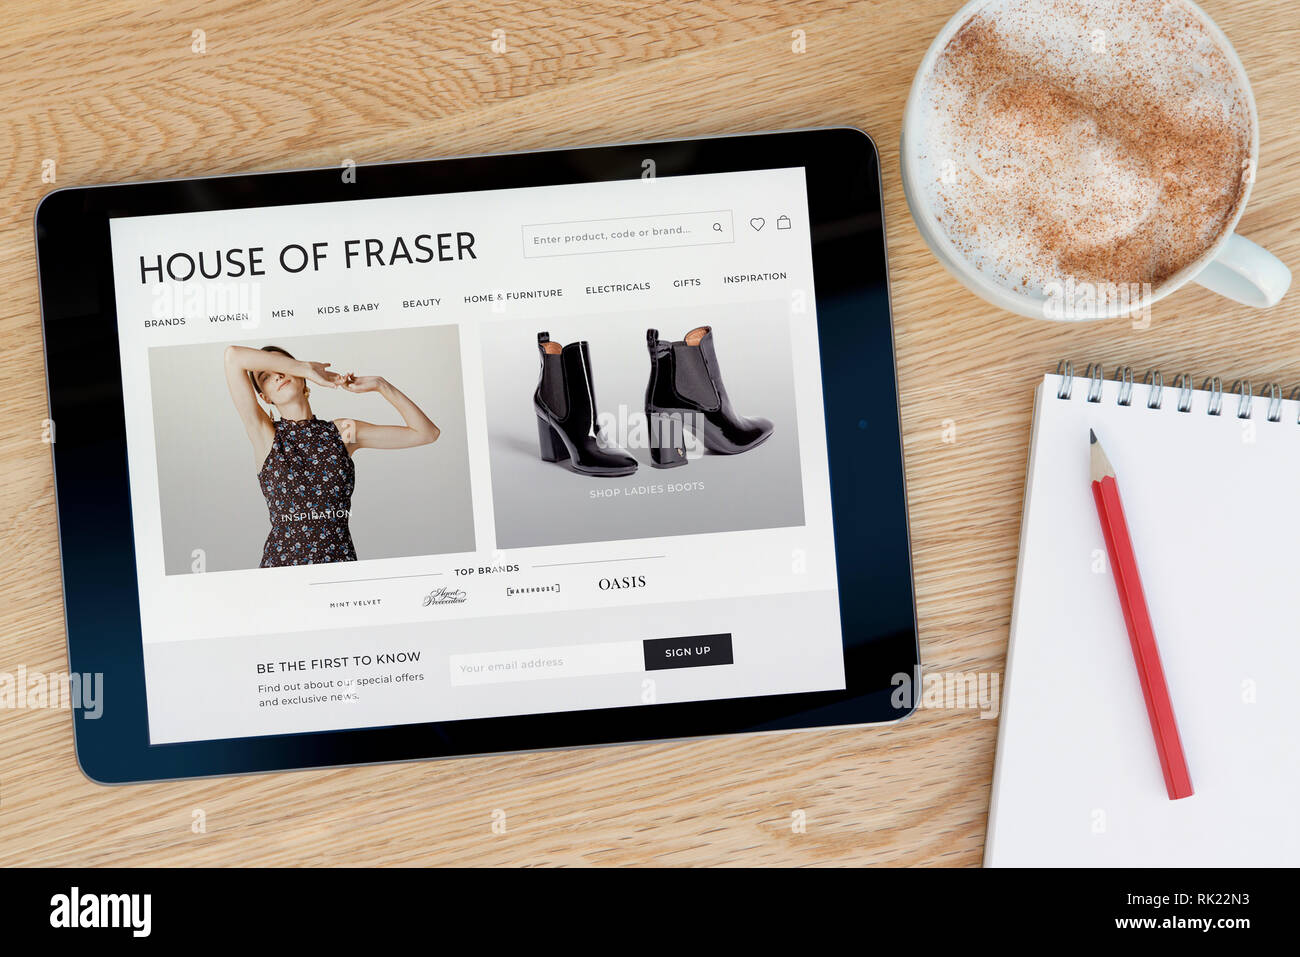 The House of Fraser website features on an iPad tablet device which rests on a wooden table beside a notepad (Editorial use only). - Stock Image